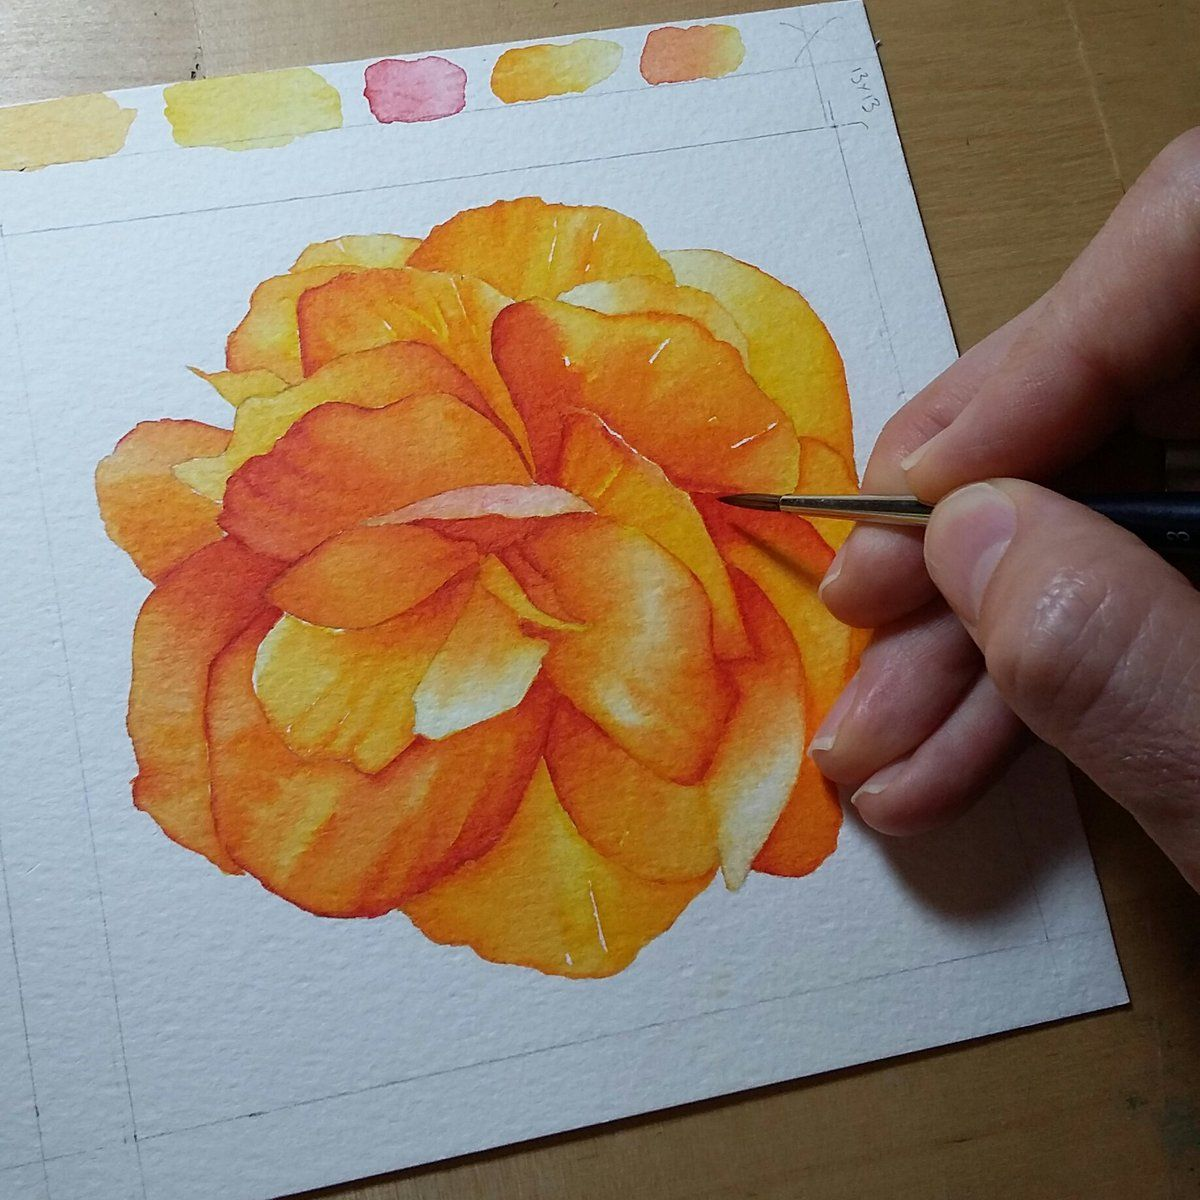 gee @geemassamArt   Finished the flower - so happy with the warm palette!  #painting #watercolourmarkers #StcMill  #watercolourpainting @winsorandnewton